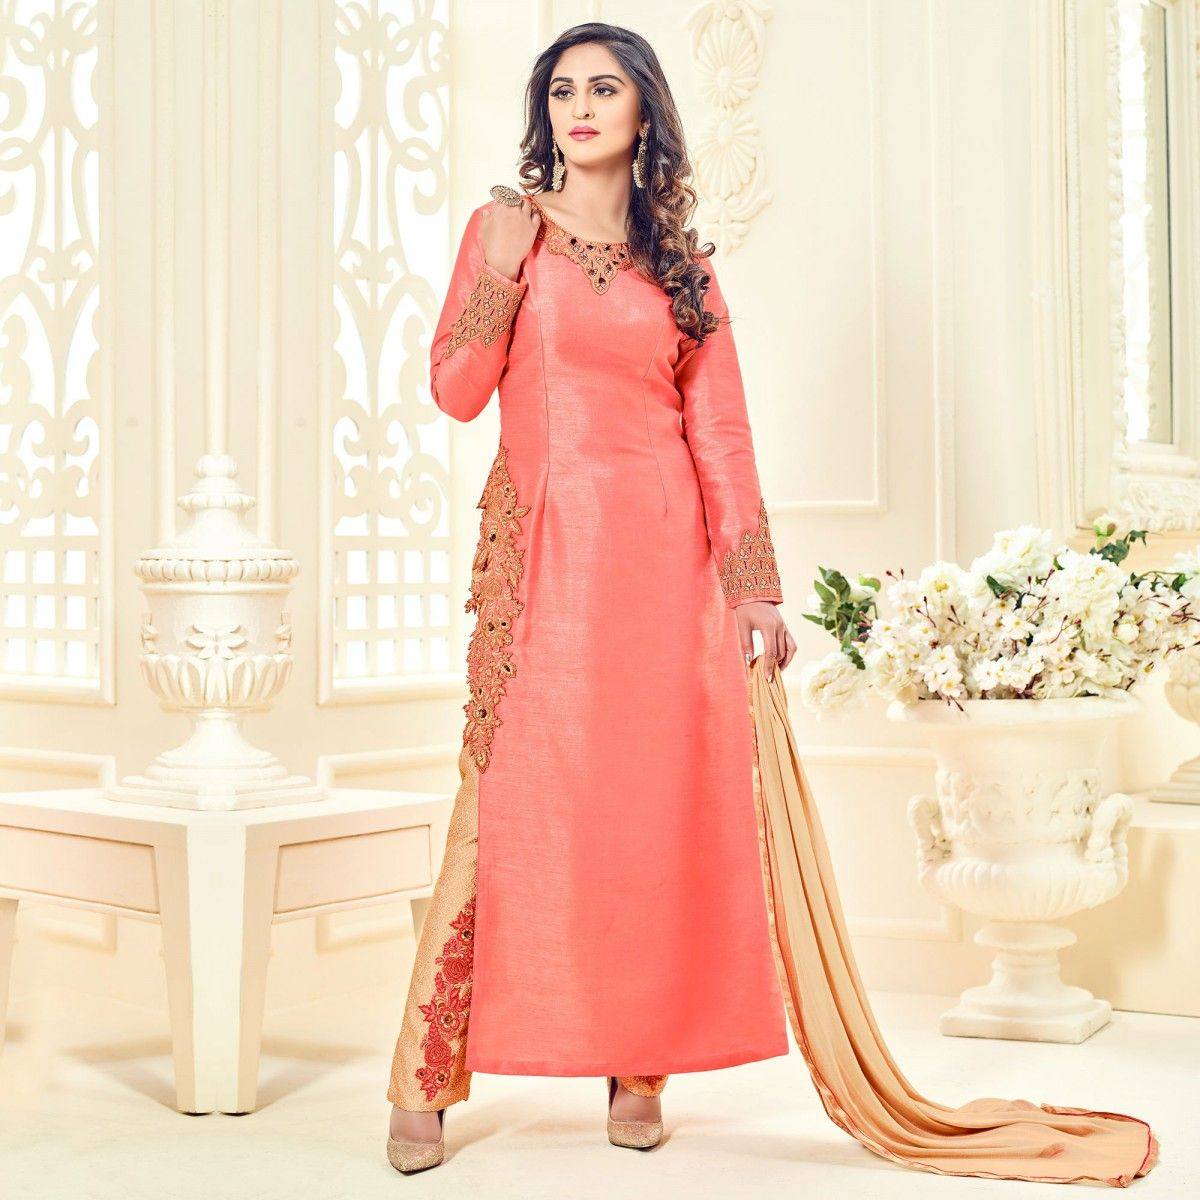 Buy Peach Embroidered Work Cotton Silk Suit online India, Best ...